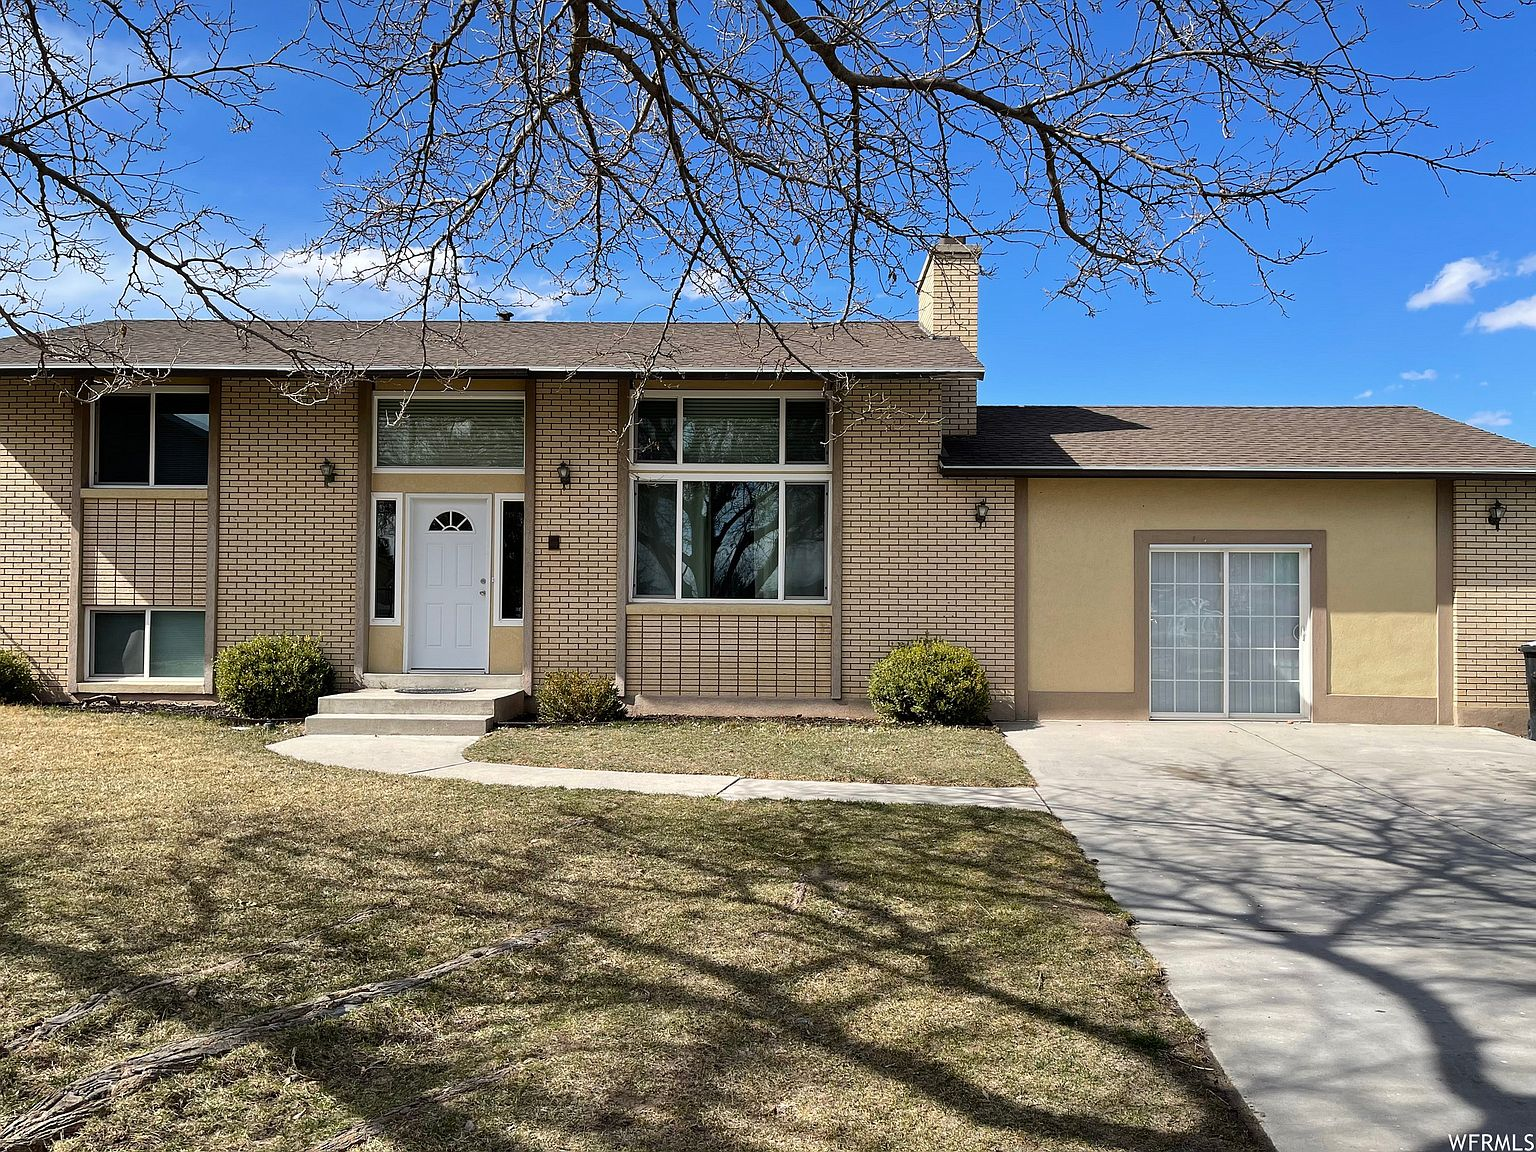 5906 S Twilight Cir Kearns Ut 84118 Zillow